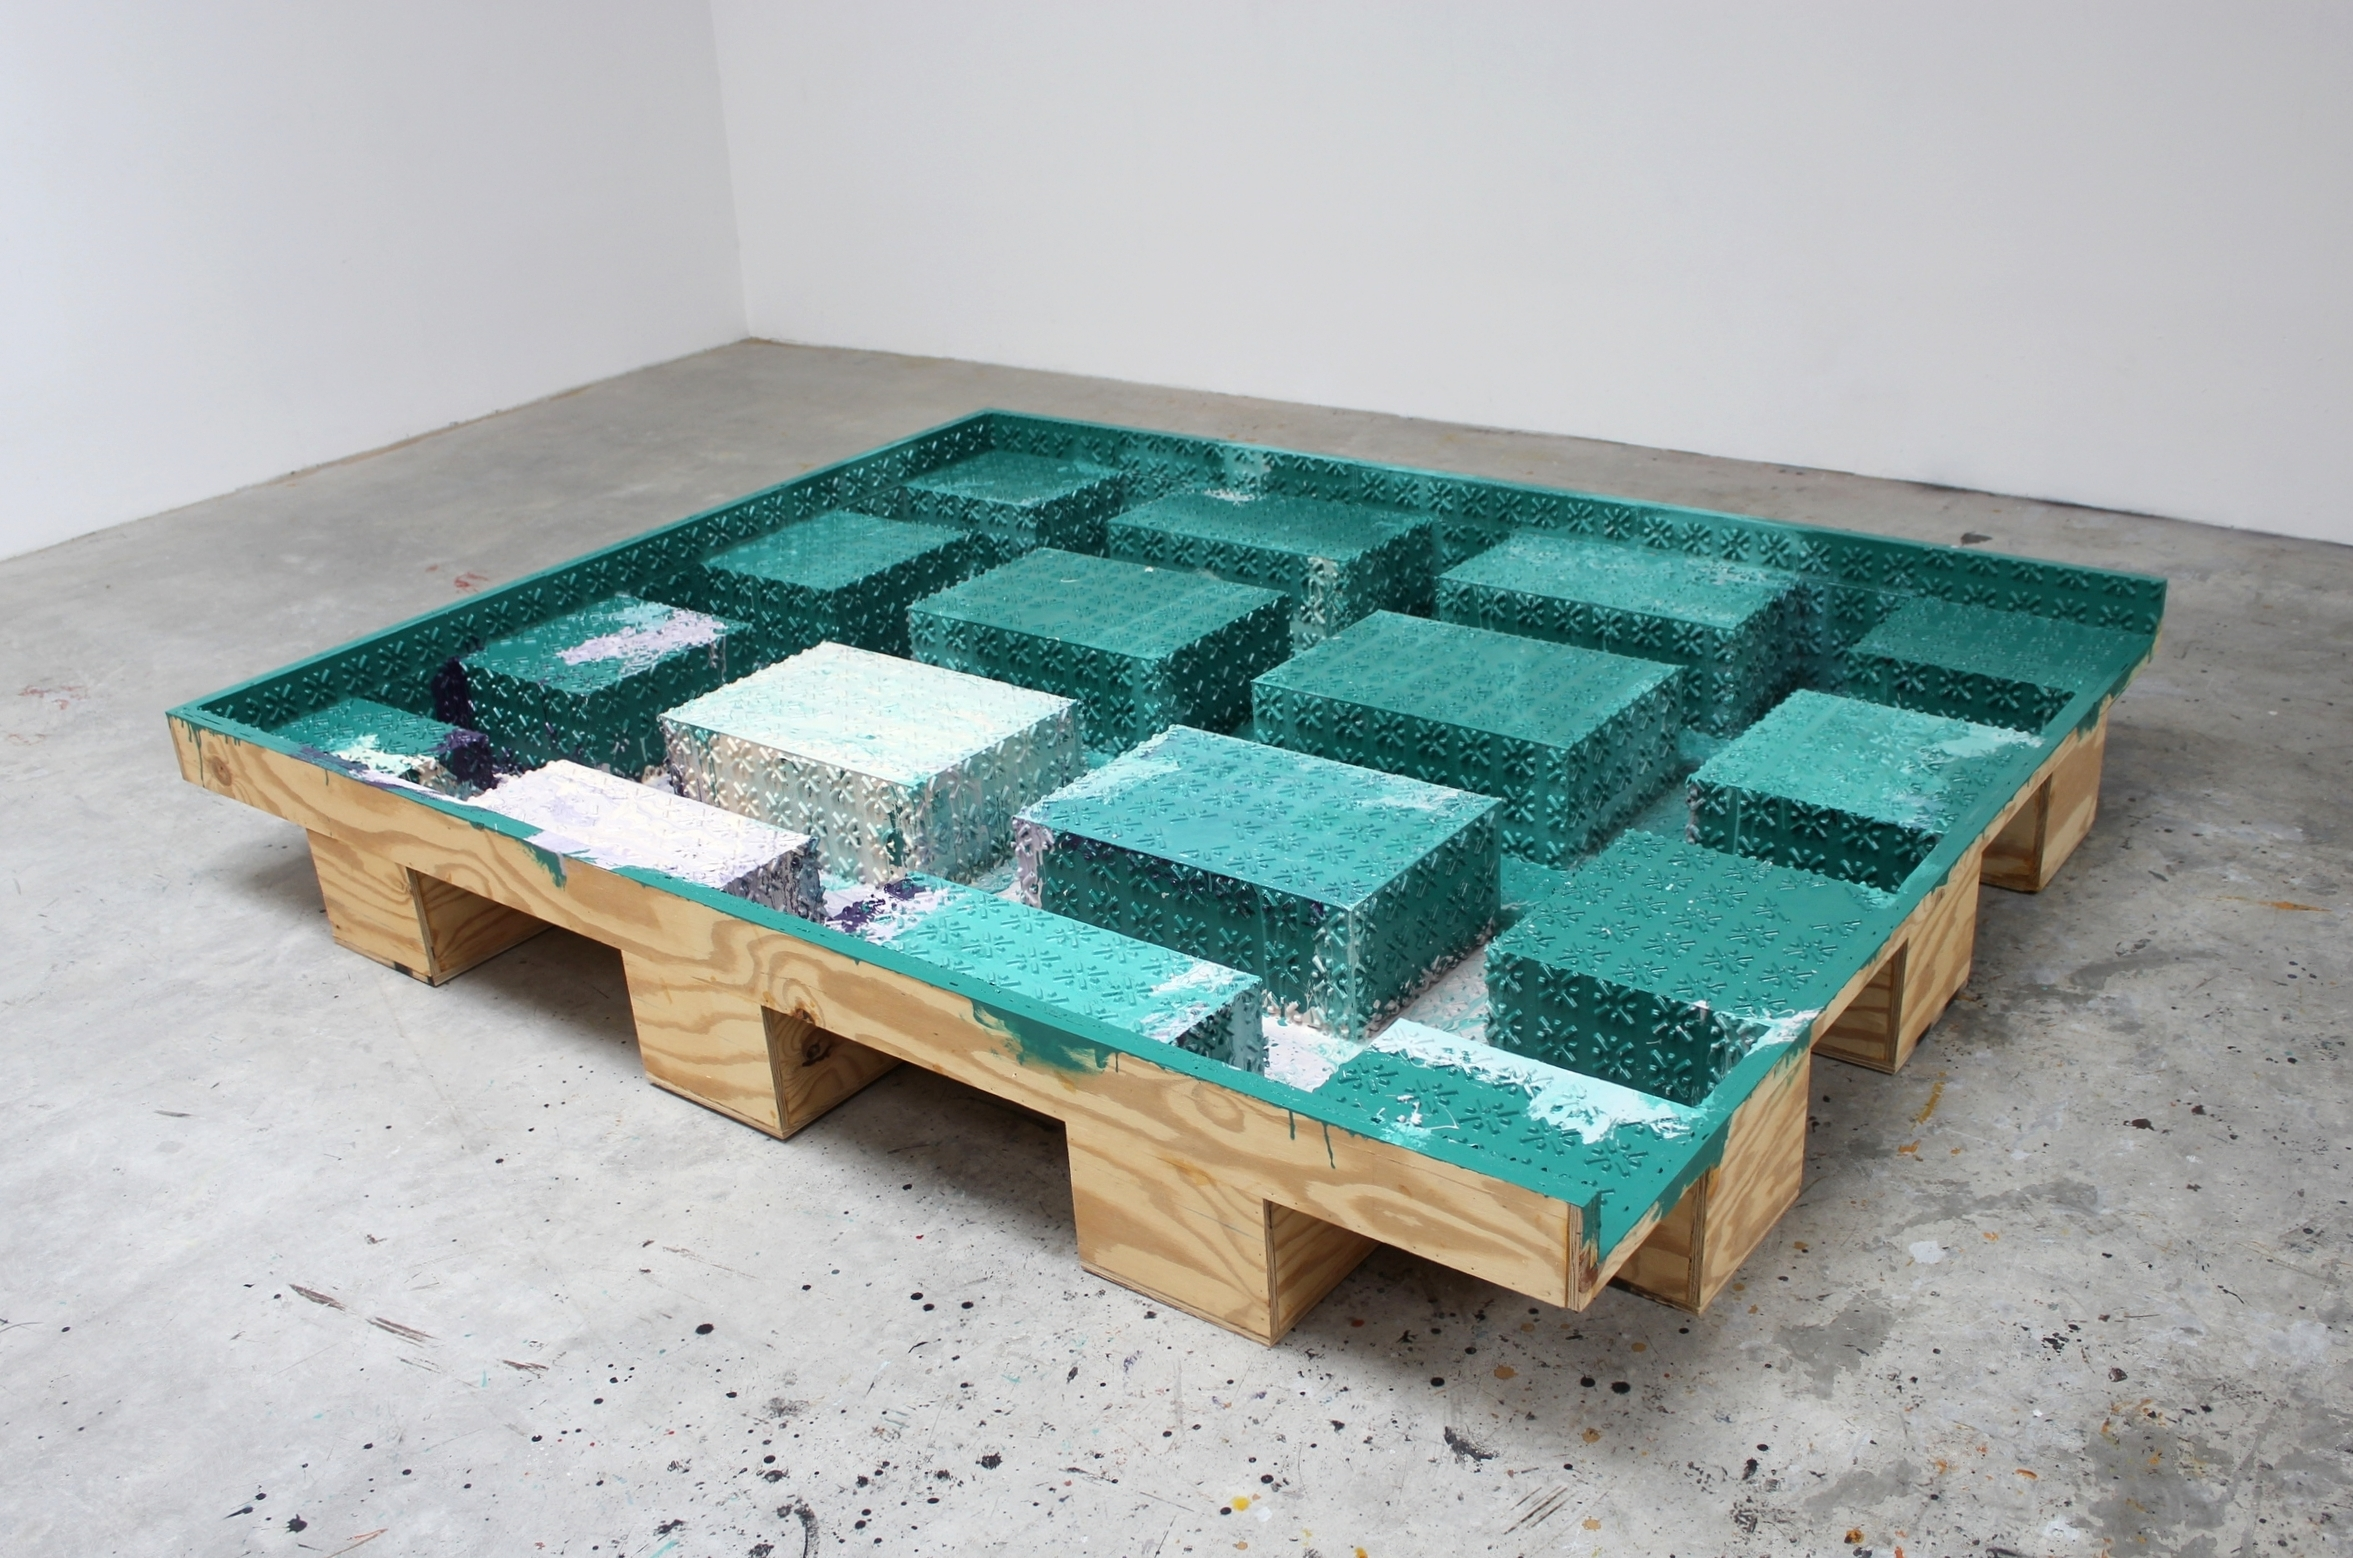 Low Container (Teal Green) 2013 12.25 x 76.5 x 96.5 inches